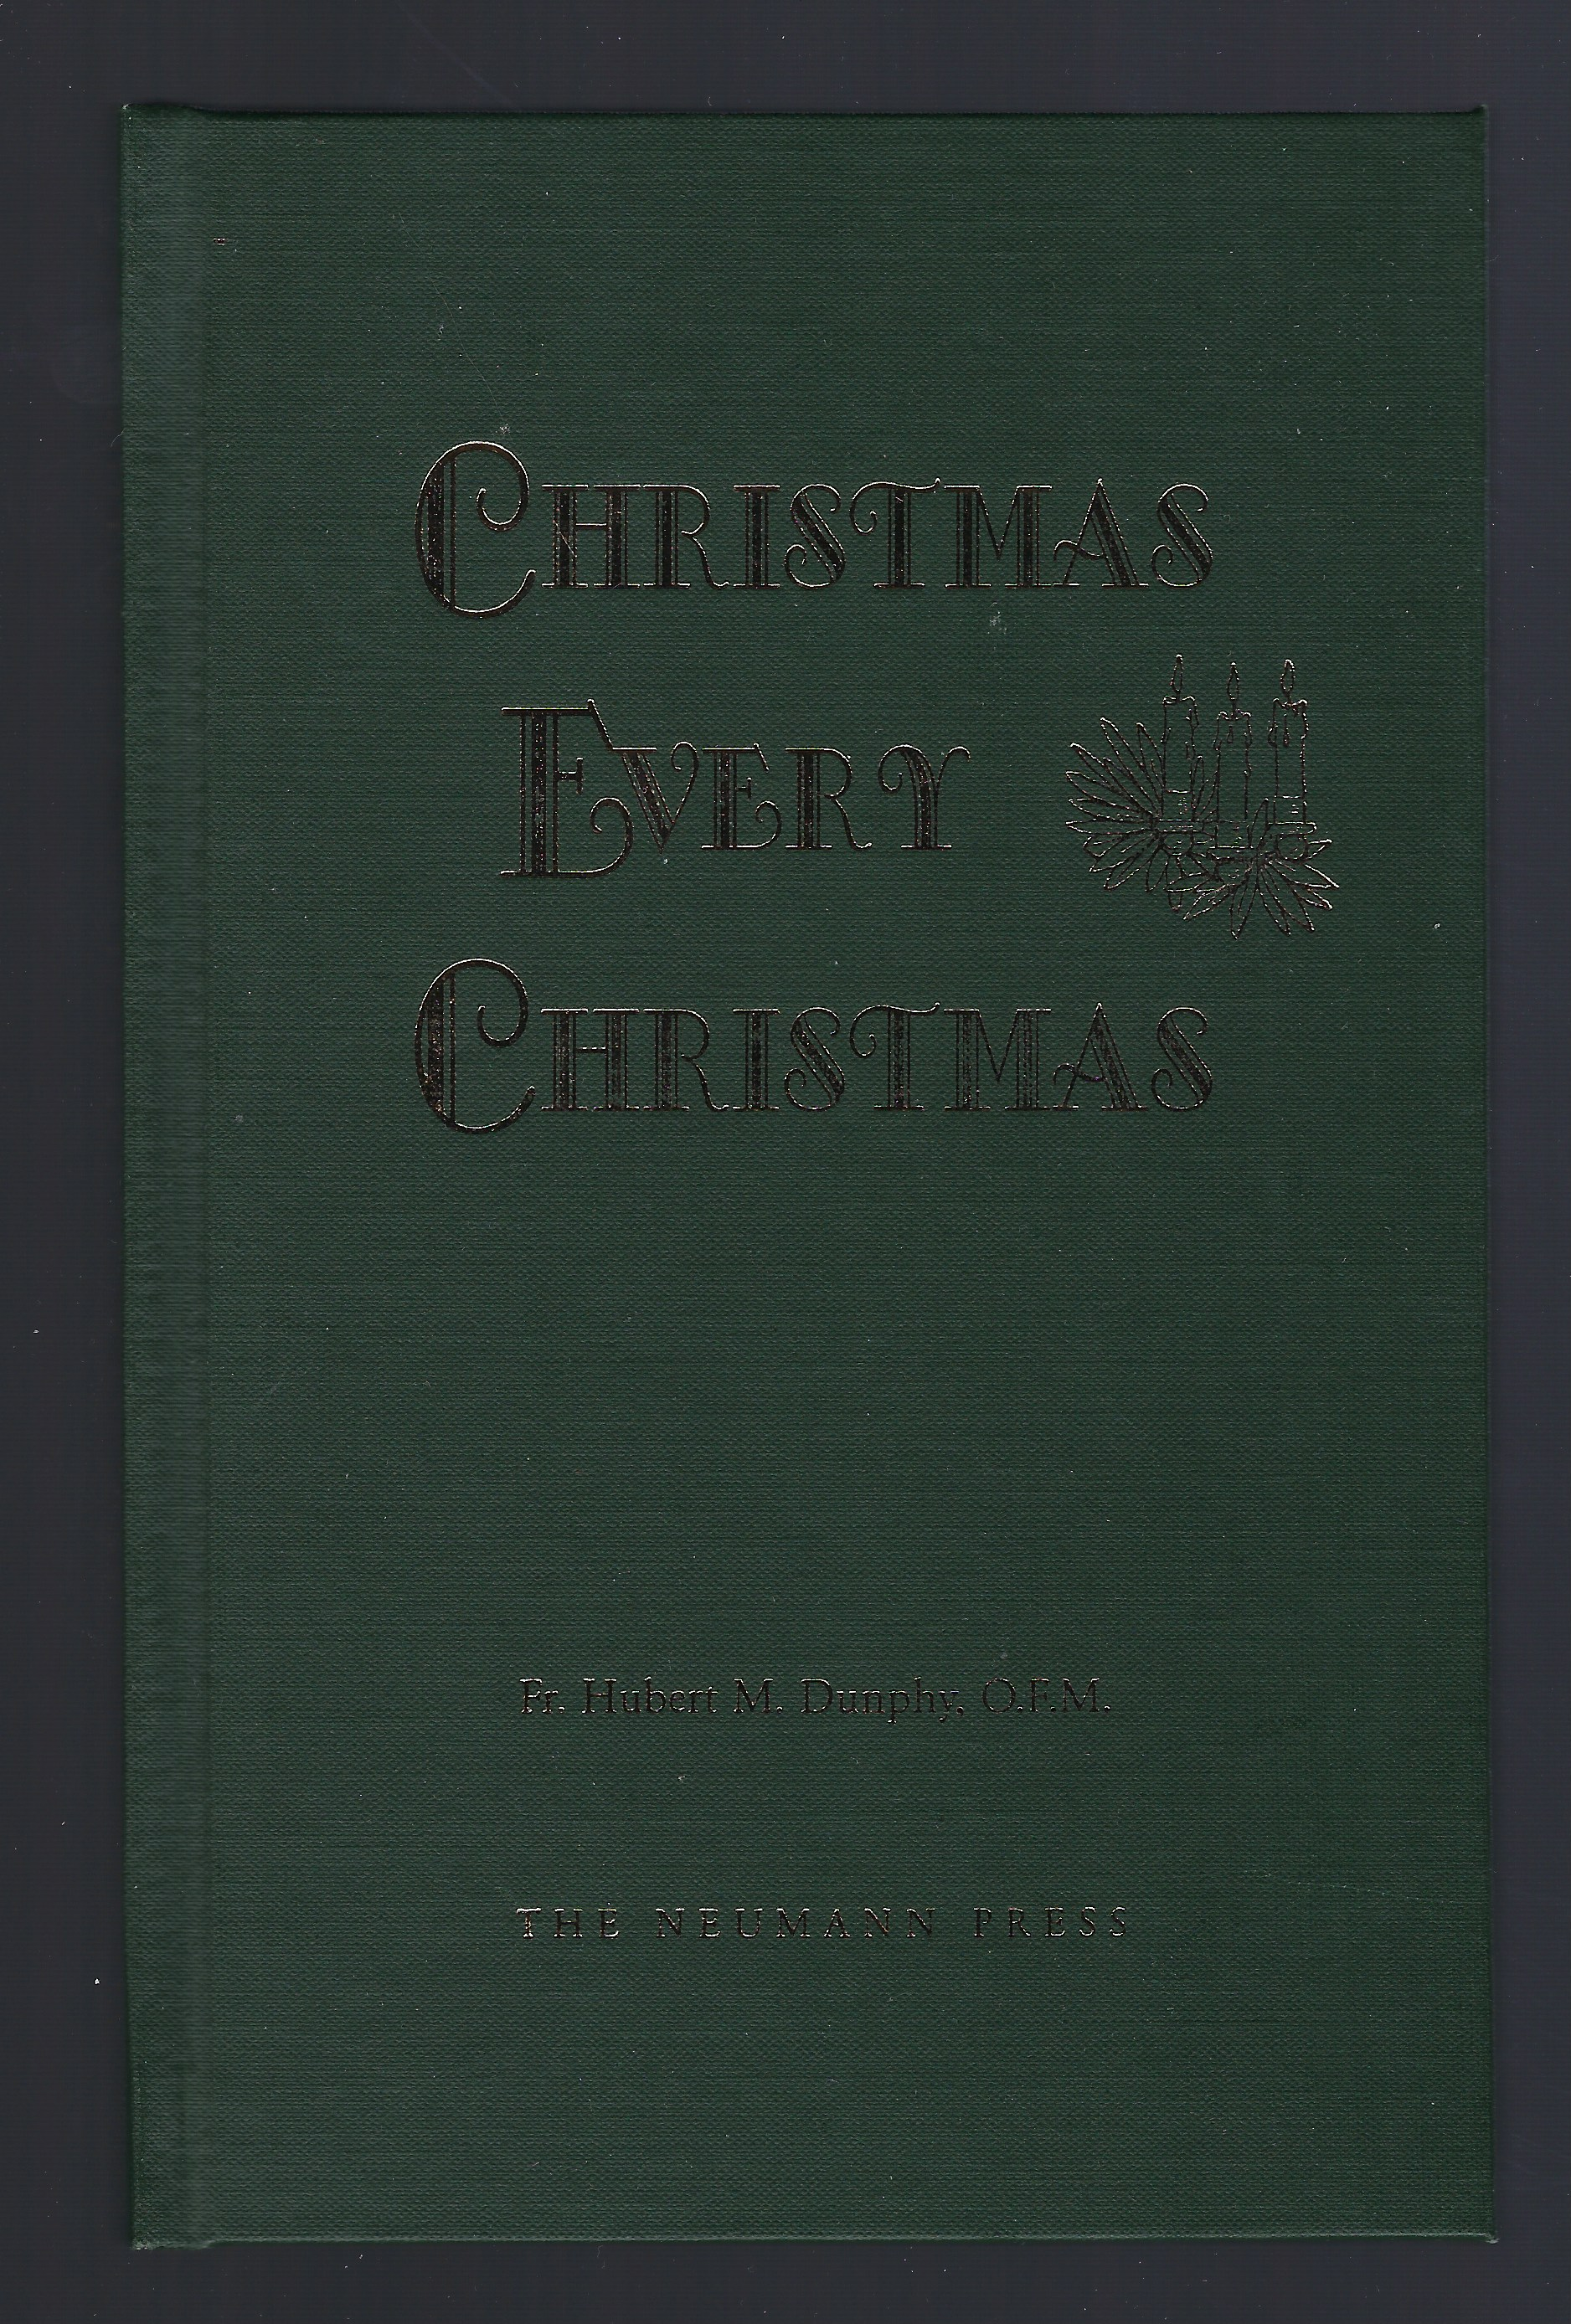 Christmas every Christmas The Neumann Press OUT OF PRINT, Hubert M Dunphy